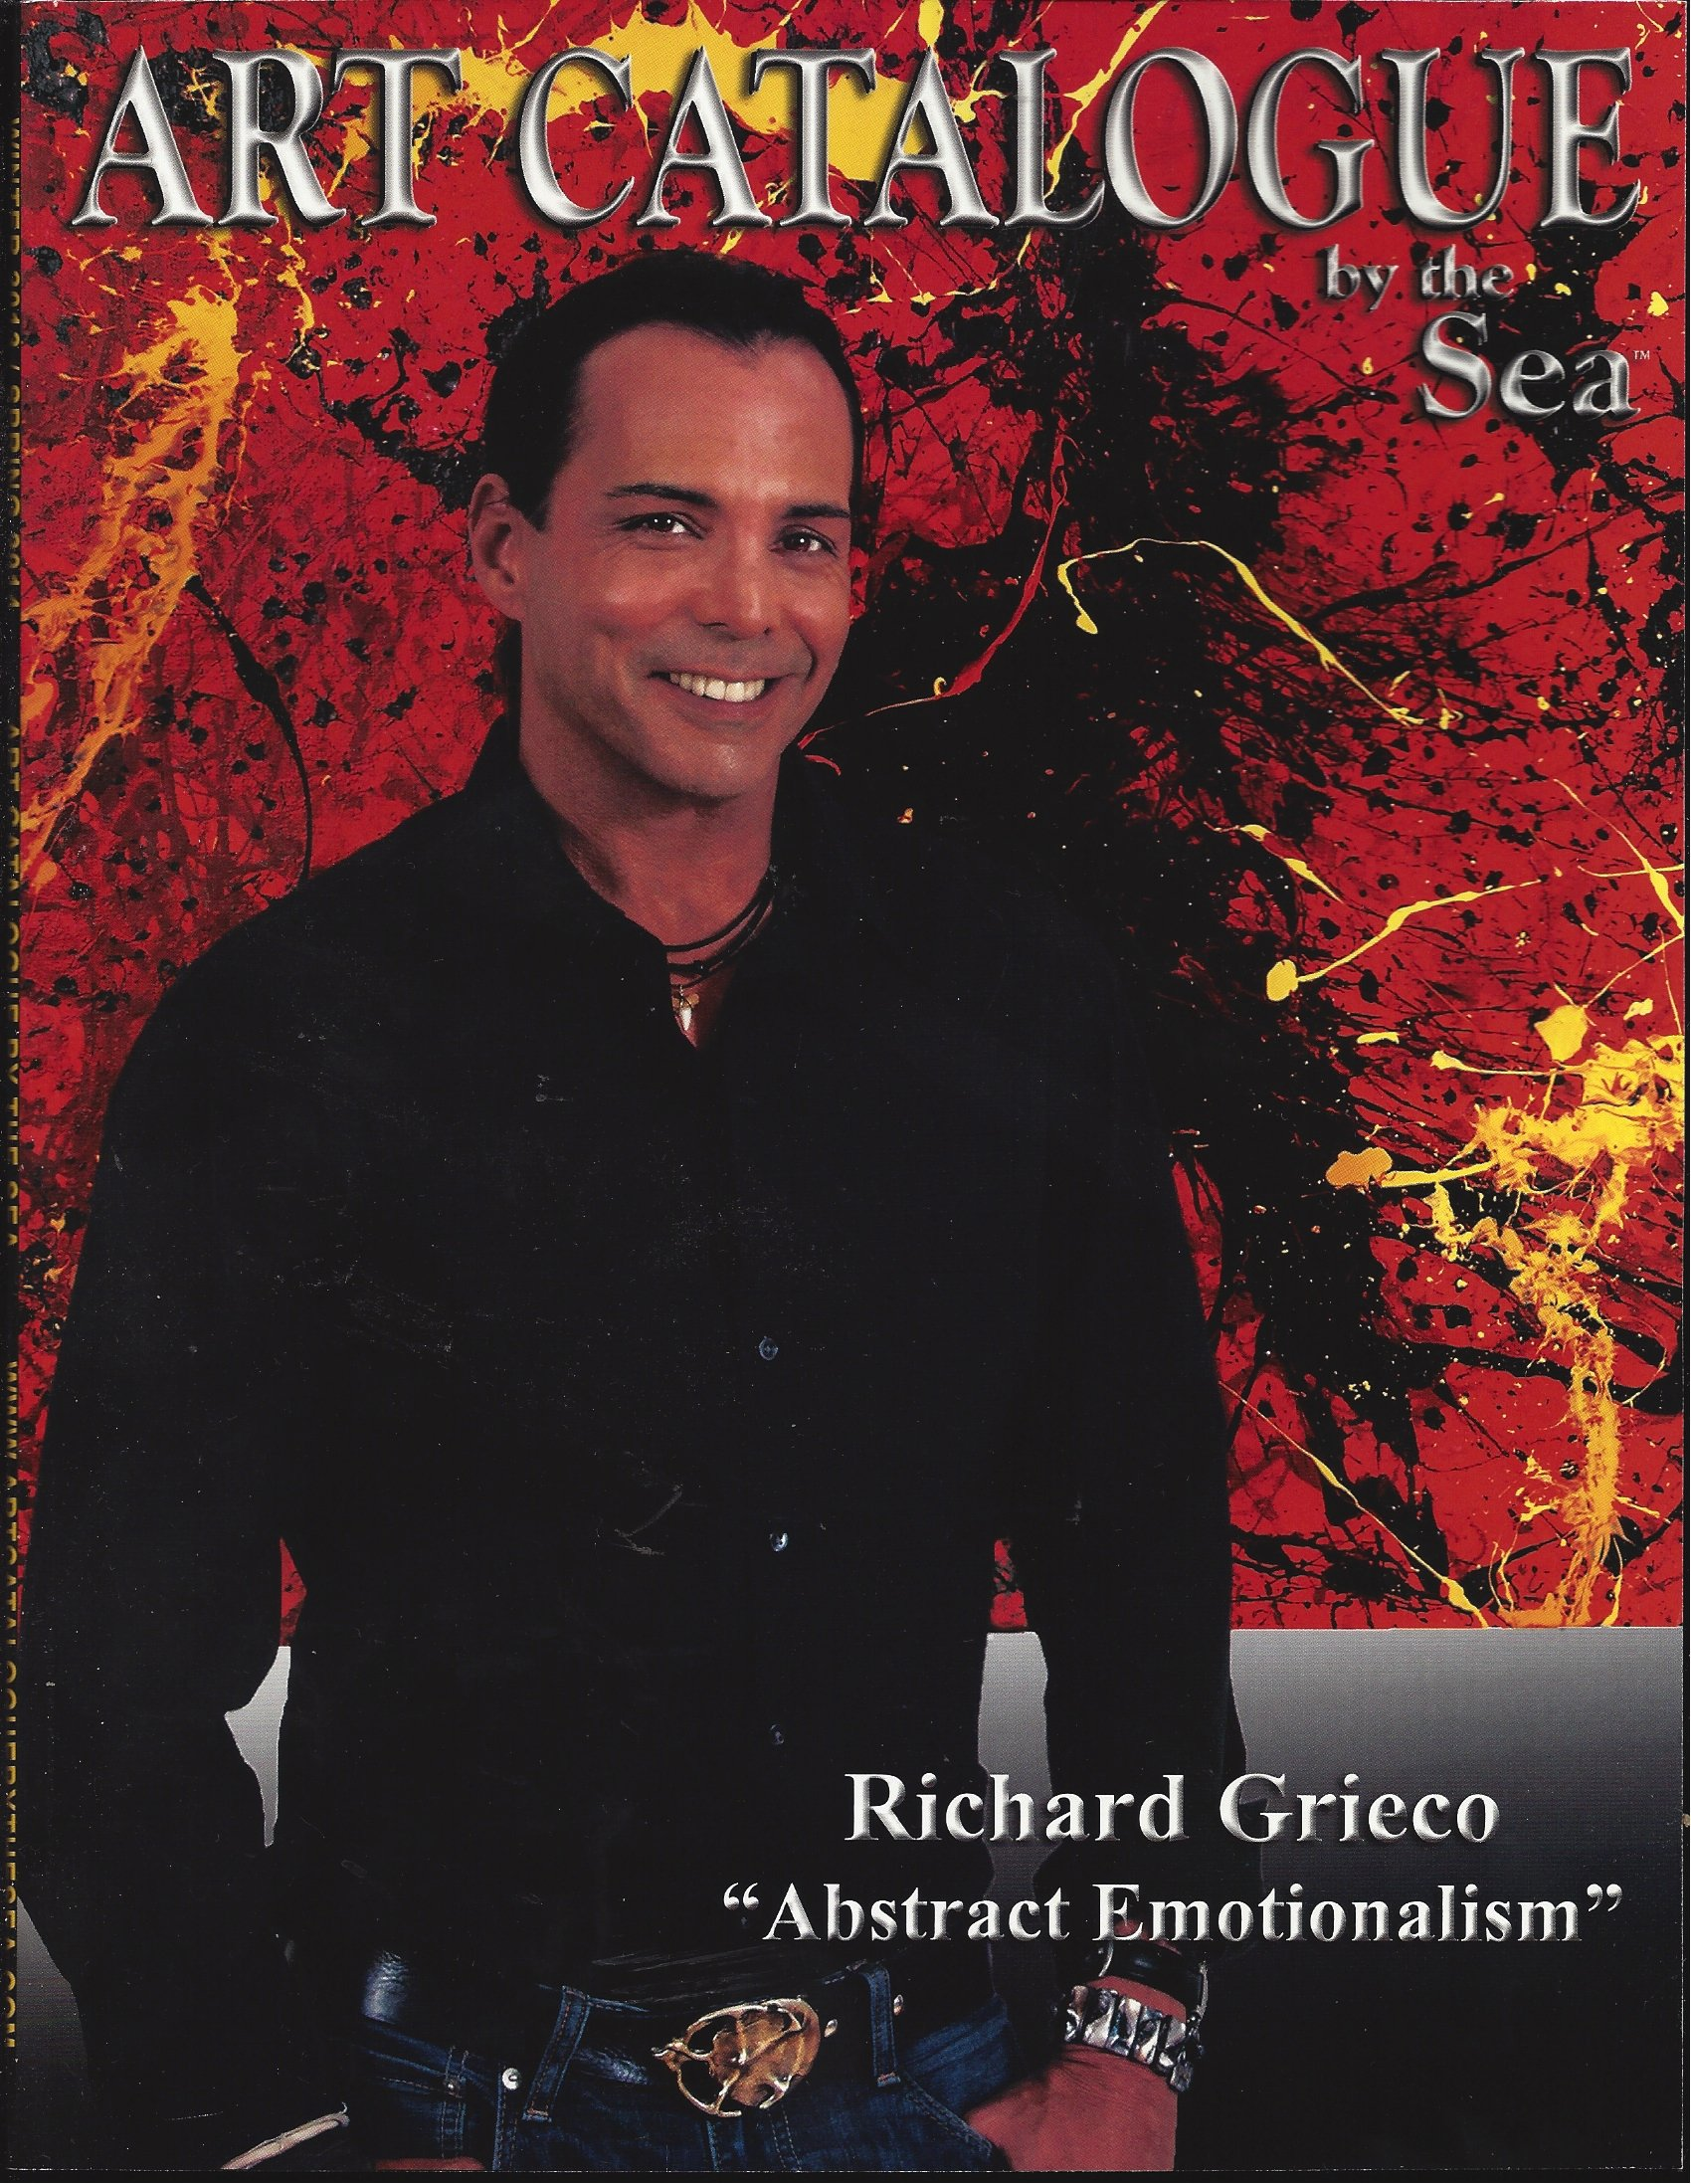 Richard Grieco Spring 2014 Abstract Emotionalism Art Catalogue By